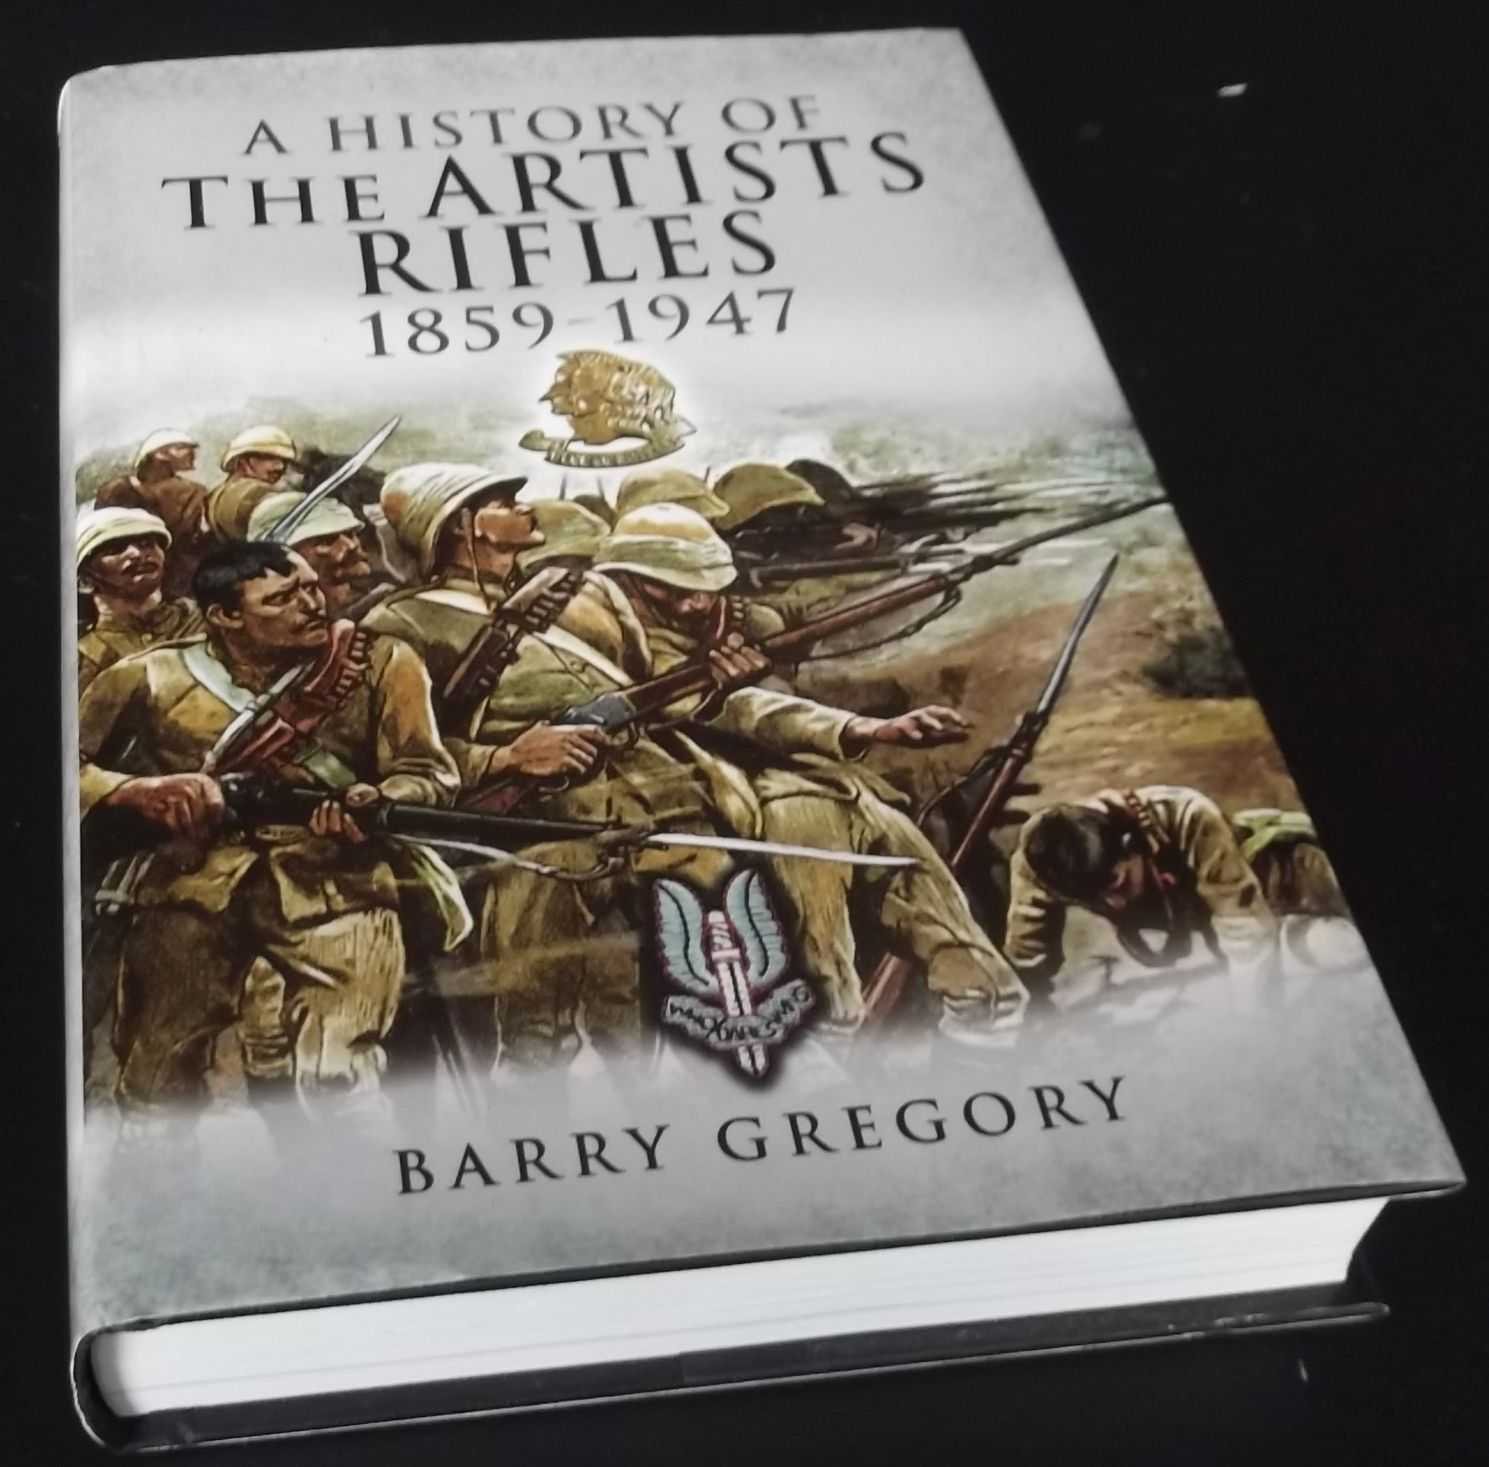 BARRY GREGORY - A History of the Artists Rifles 1859-1947